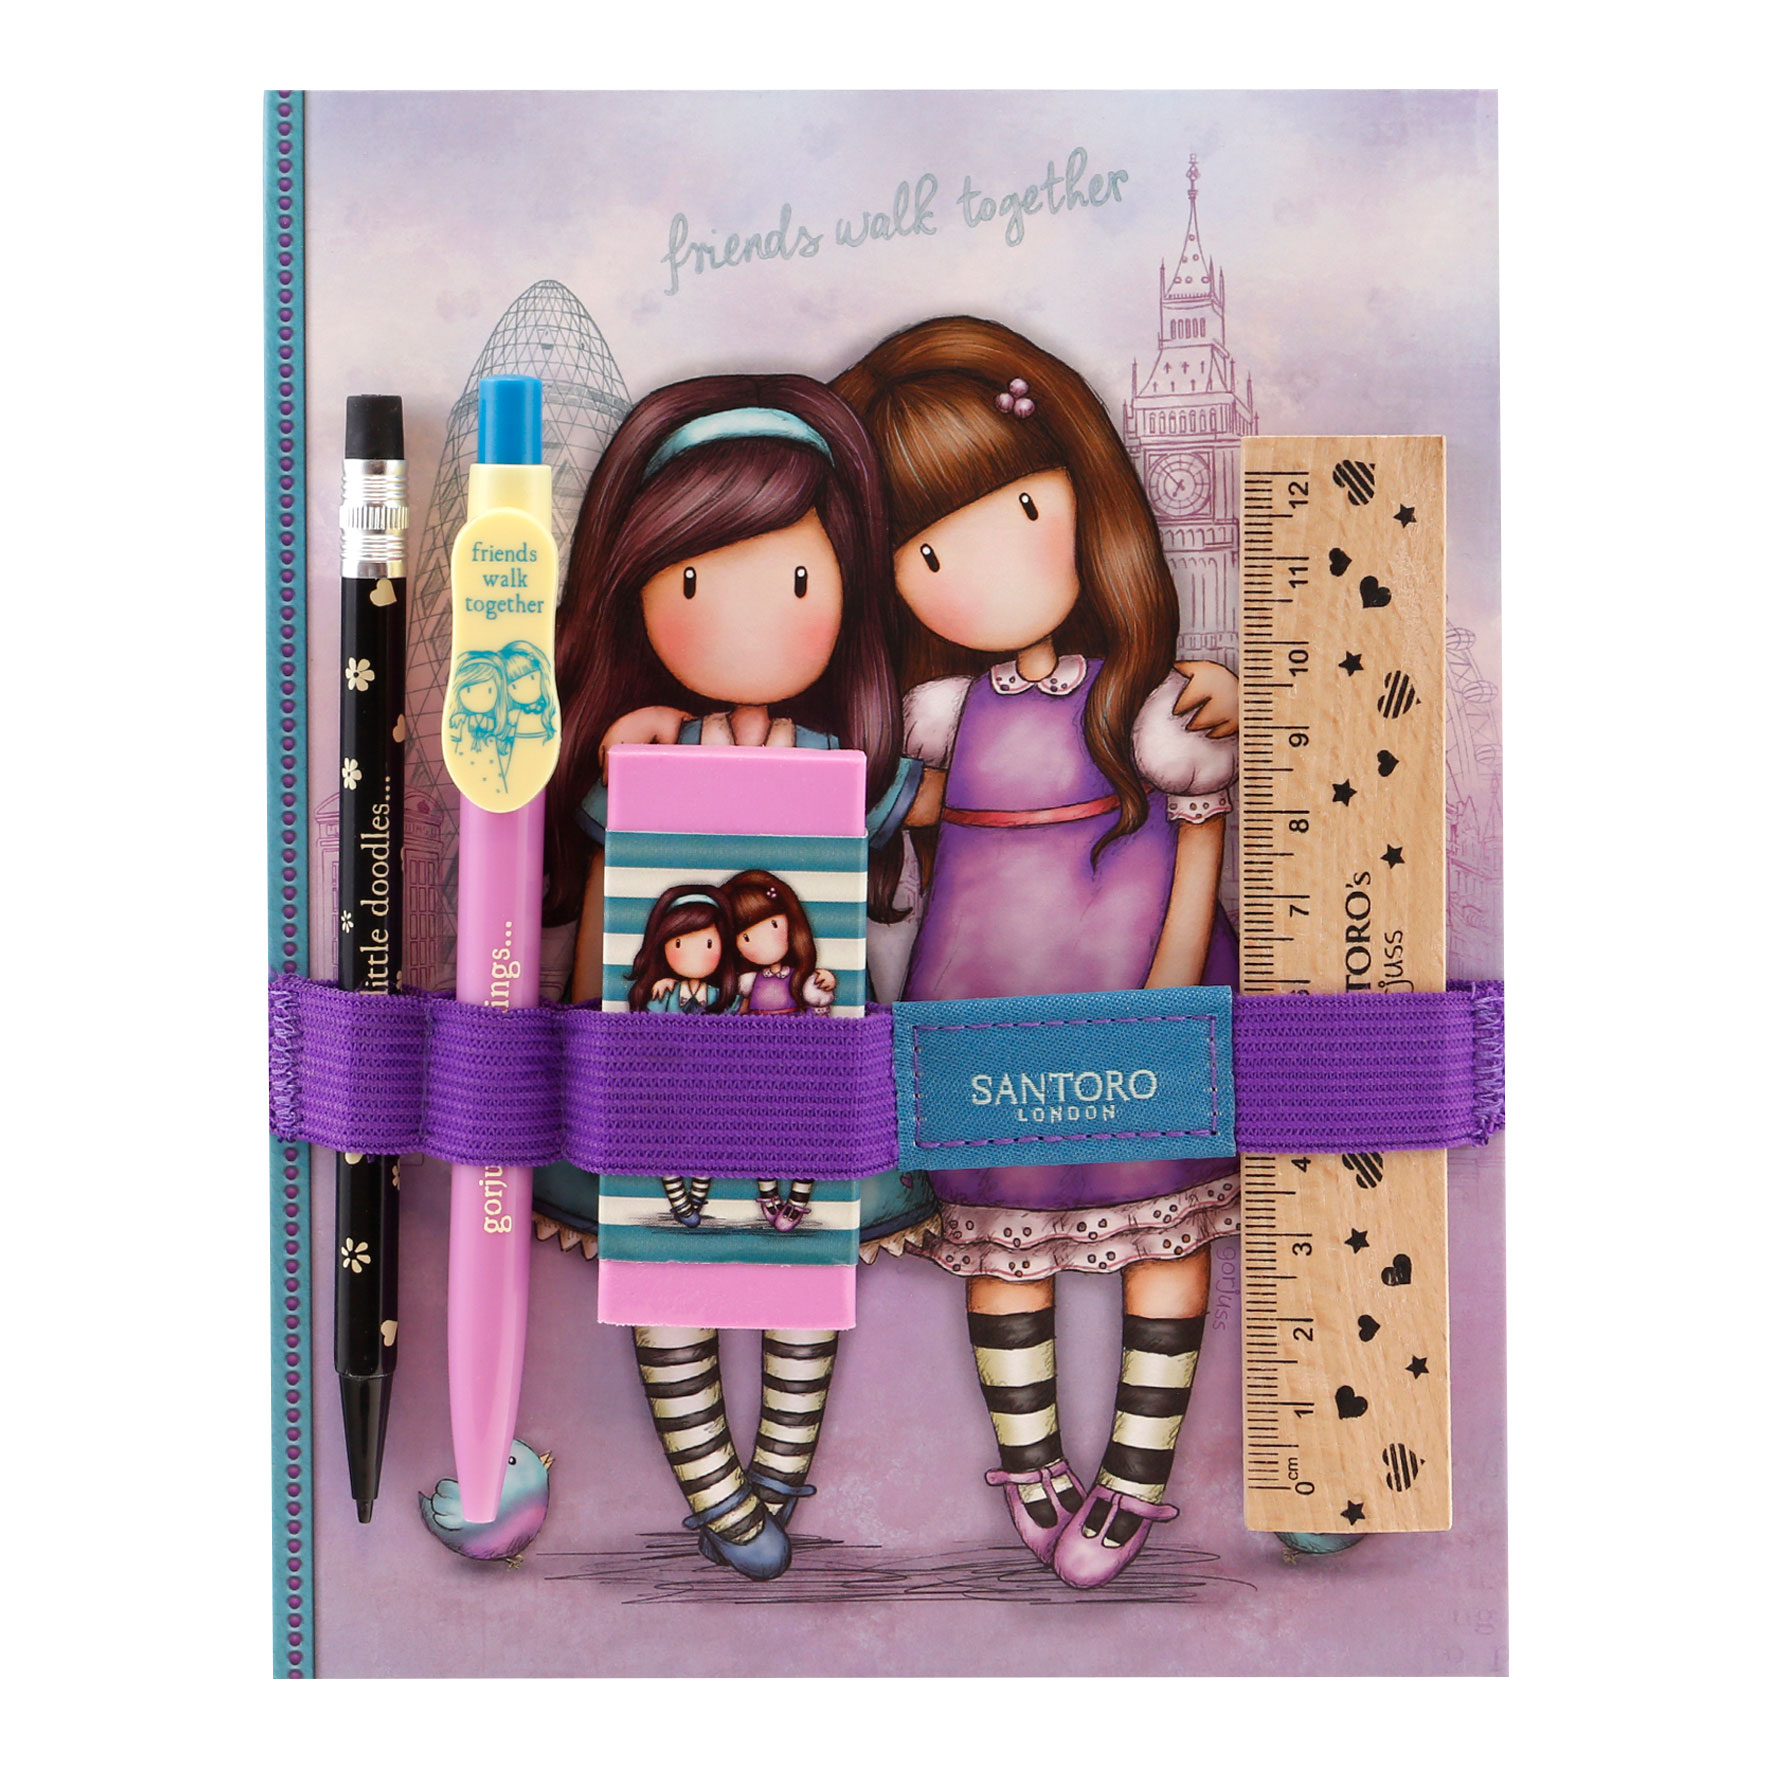 Gorjuss Cityscape Notebook with Stationery Set - Friends Walk Together